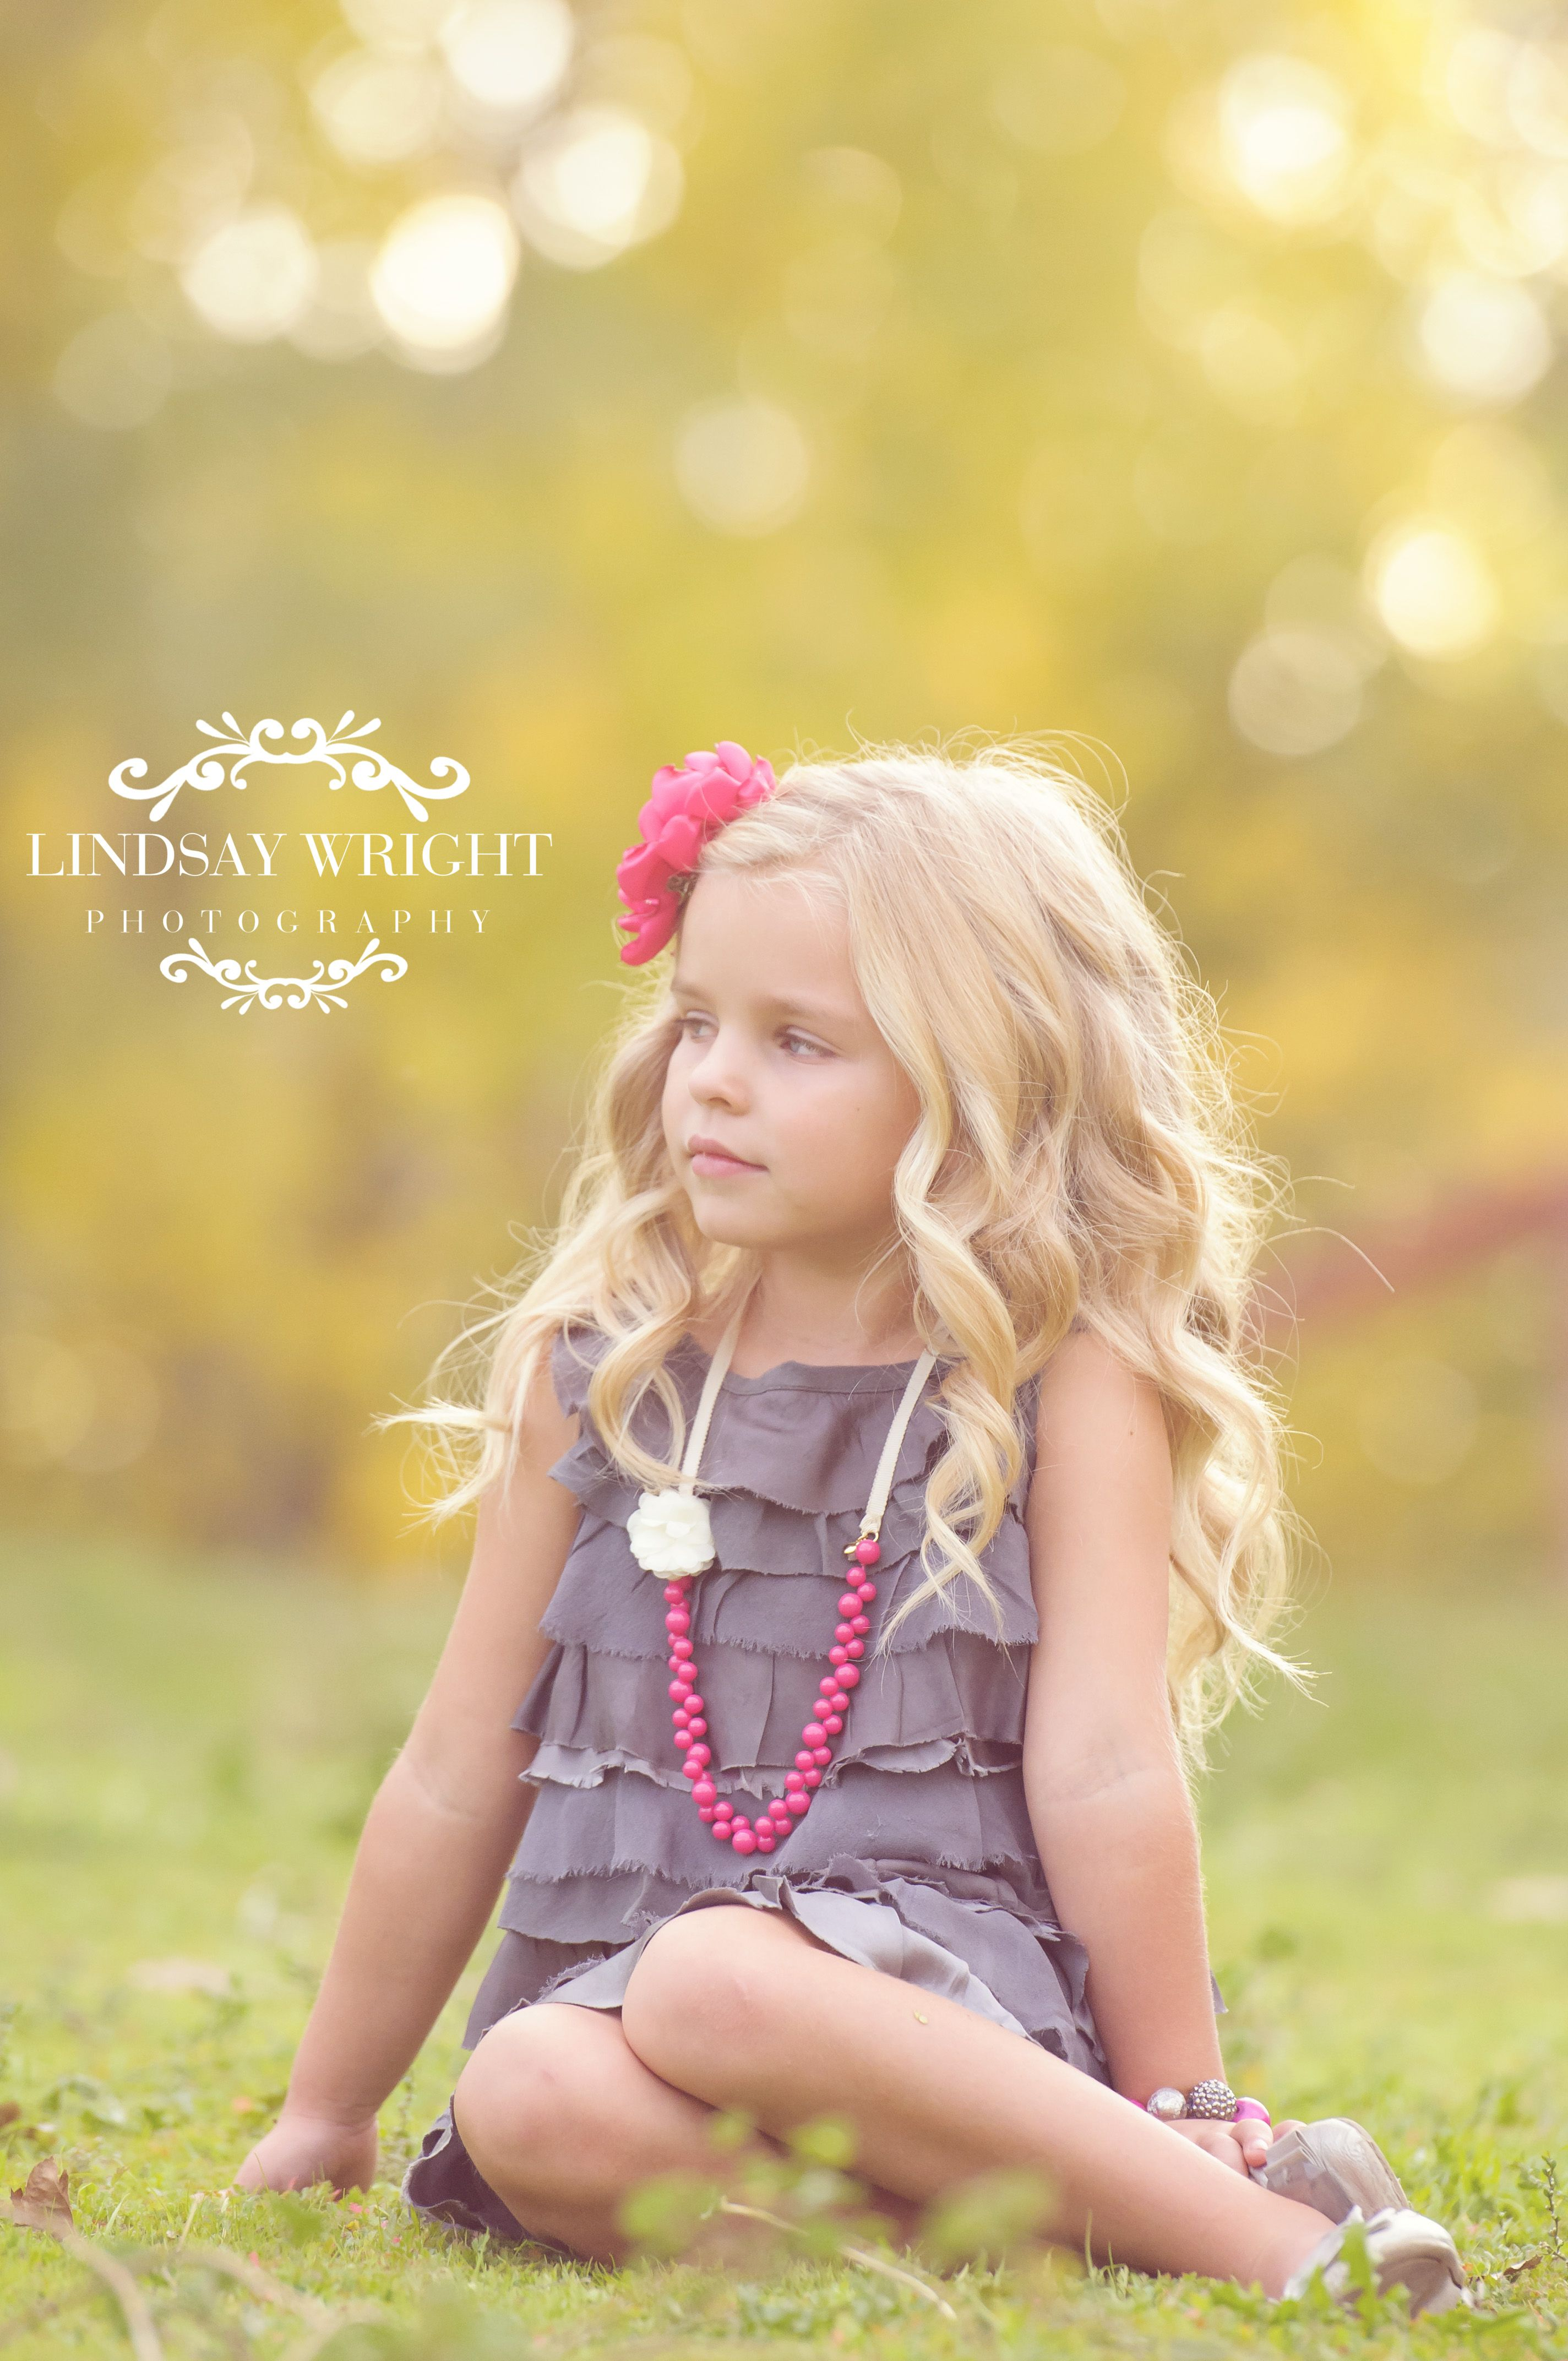 Child Photography | Photo Session Idea | Pose Ideas | Prop ...